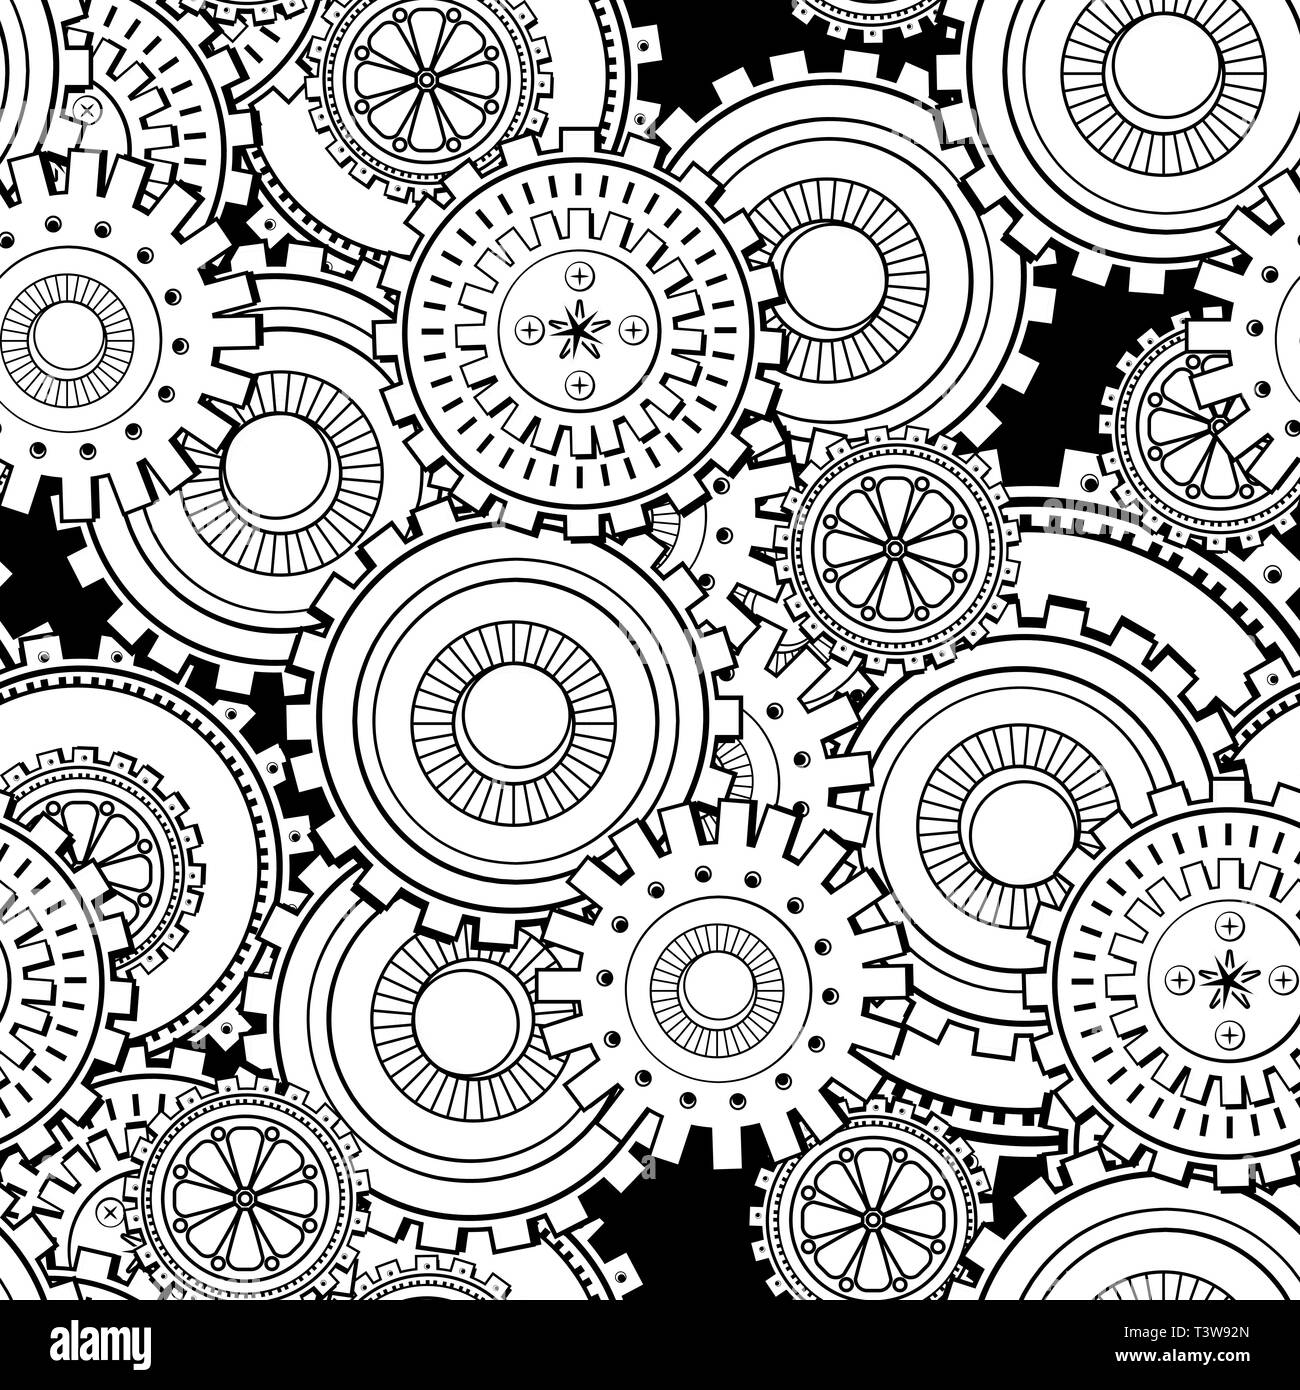 Cogwheels Seamless Pattern Cogs And Gears Steampunk